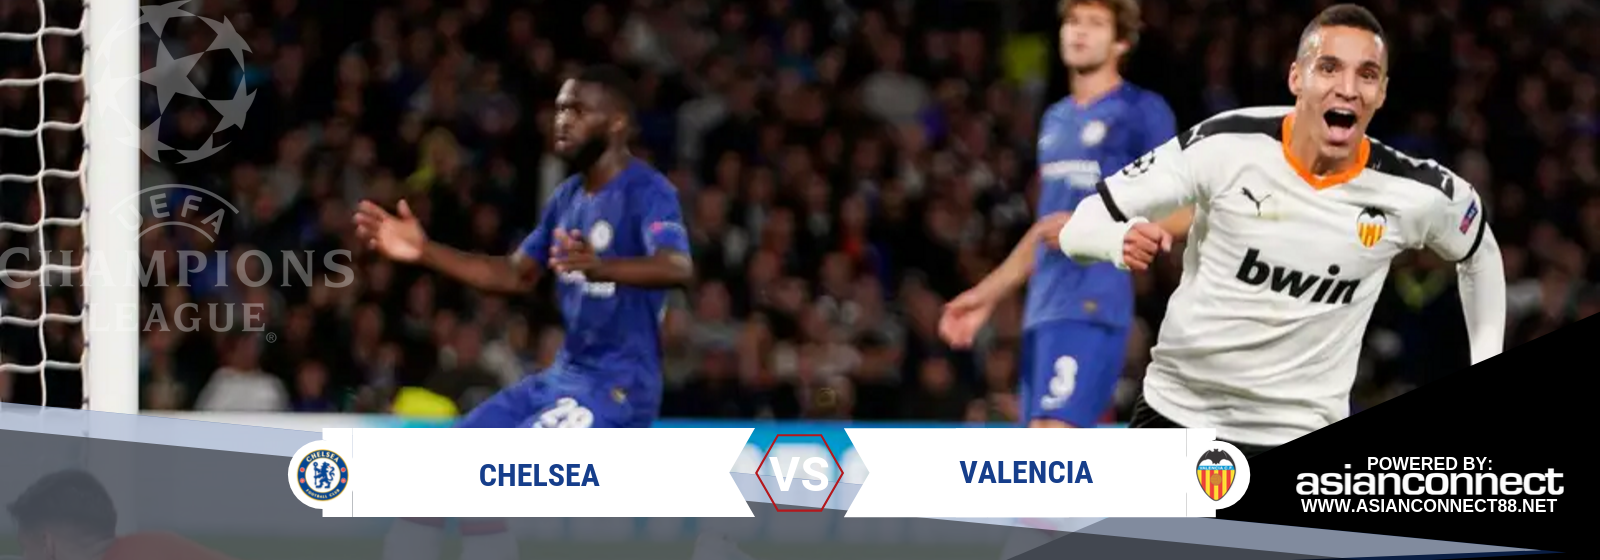 UCL Chelsea Vs. Valencia Asian Connect